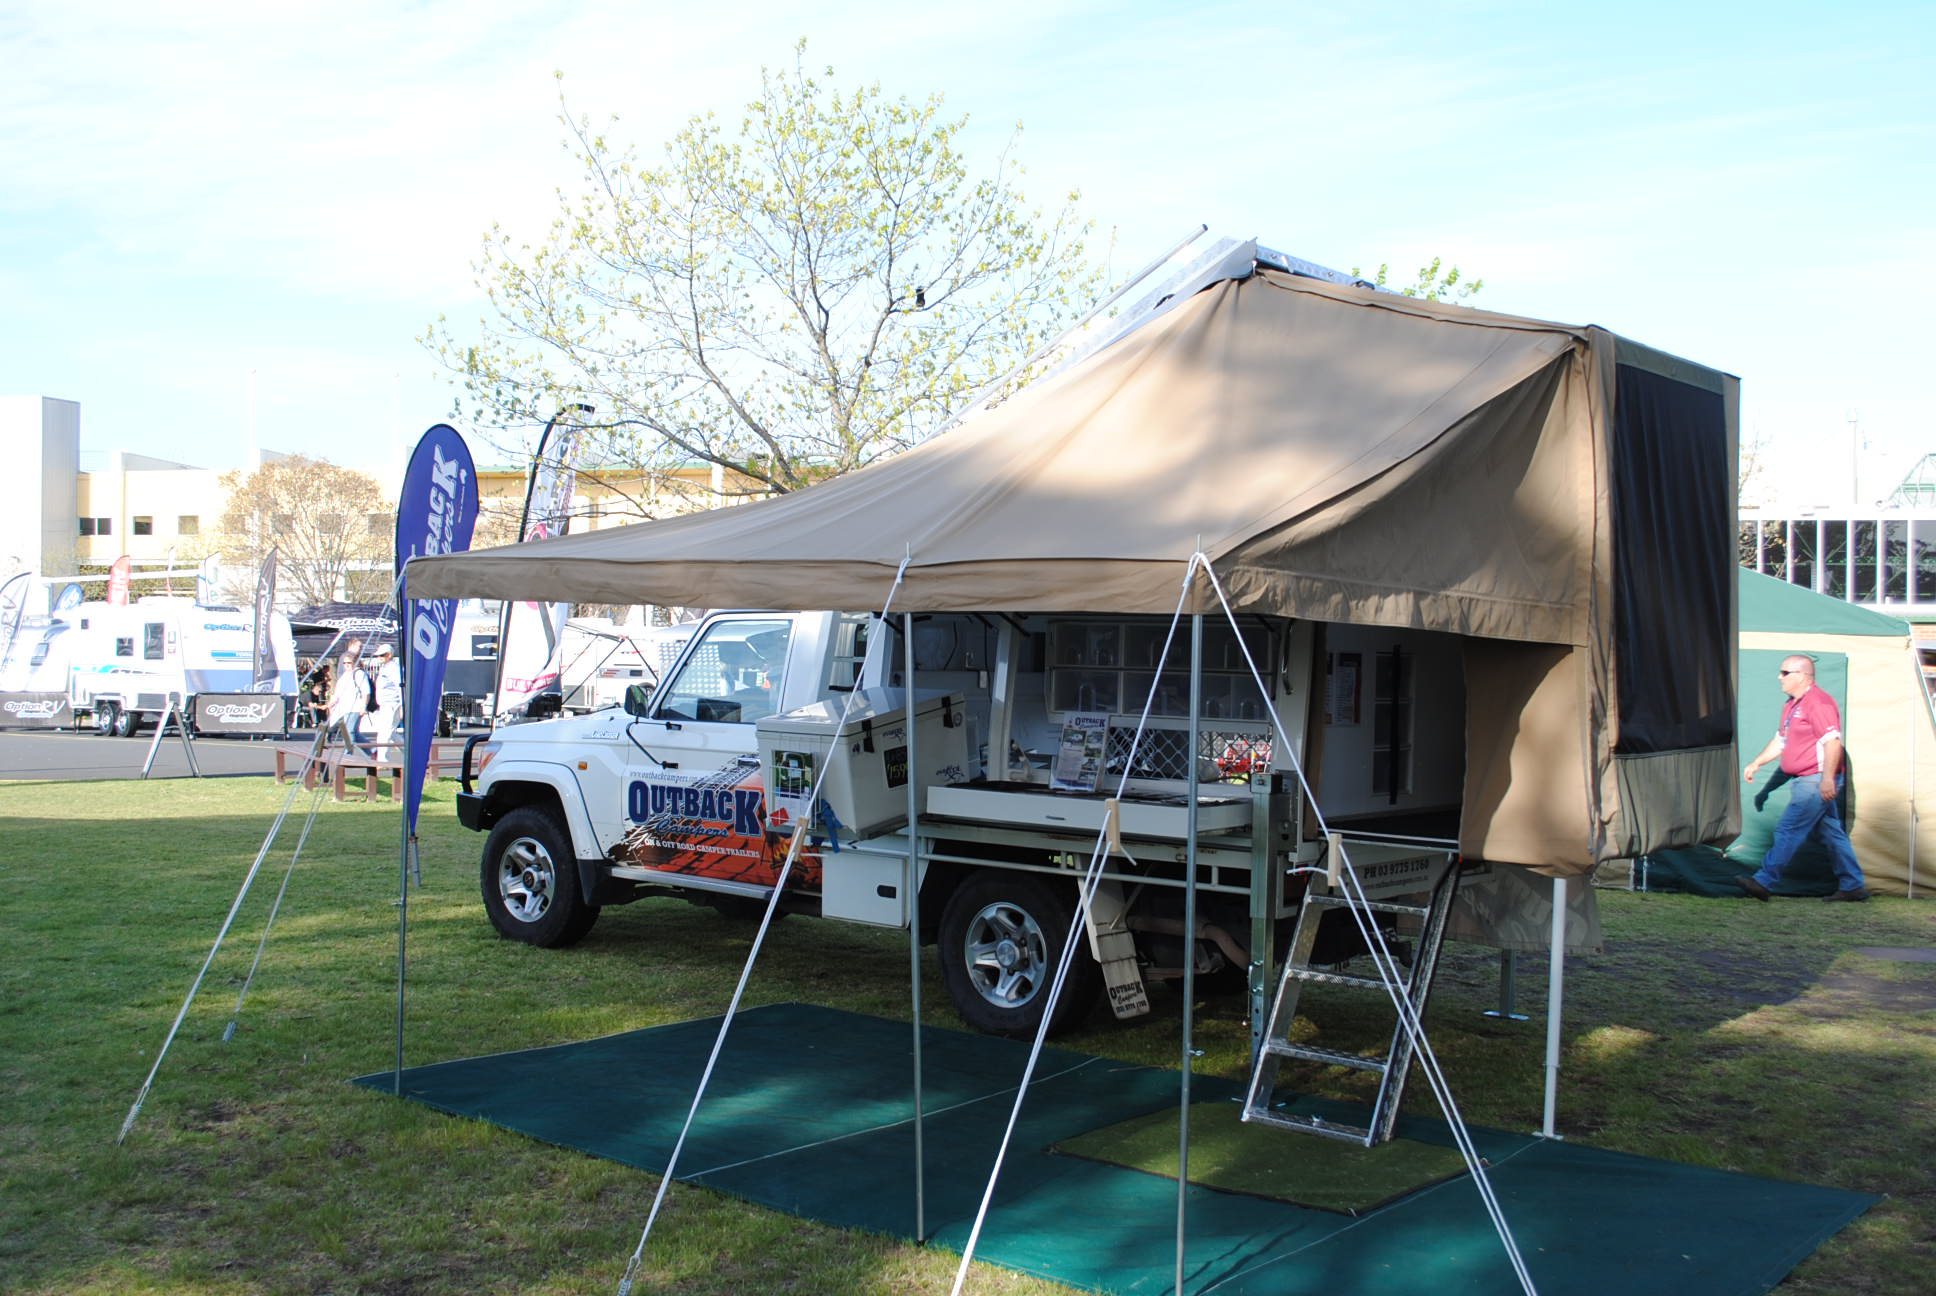 Extra Cab Outback Campers Camper Trailers Melbourne